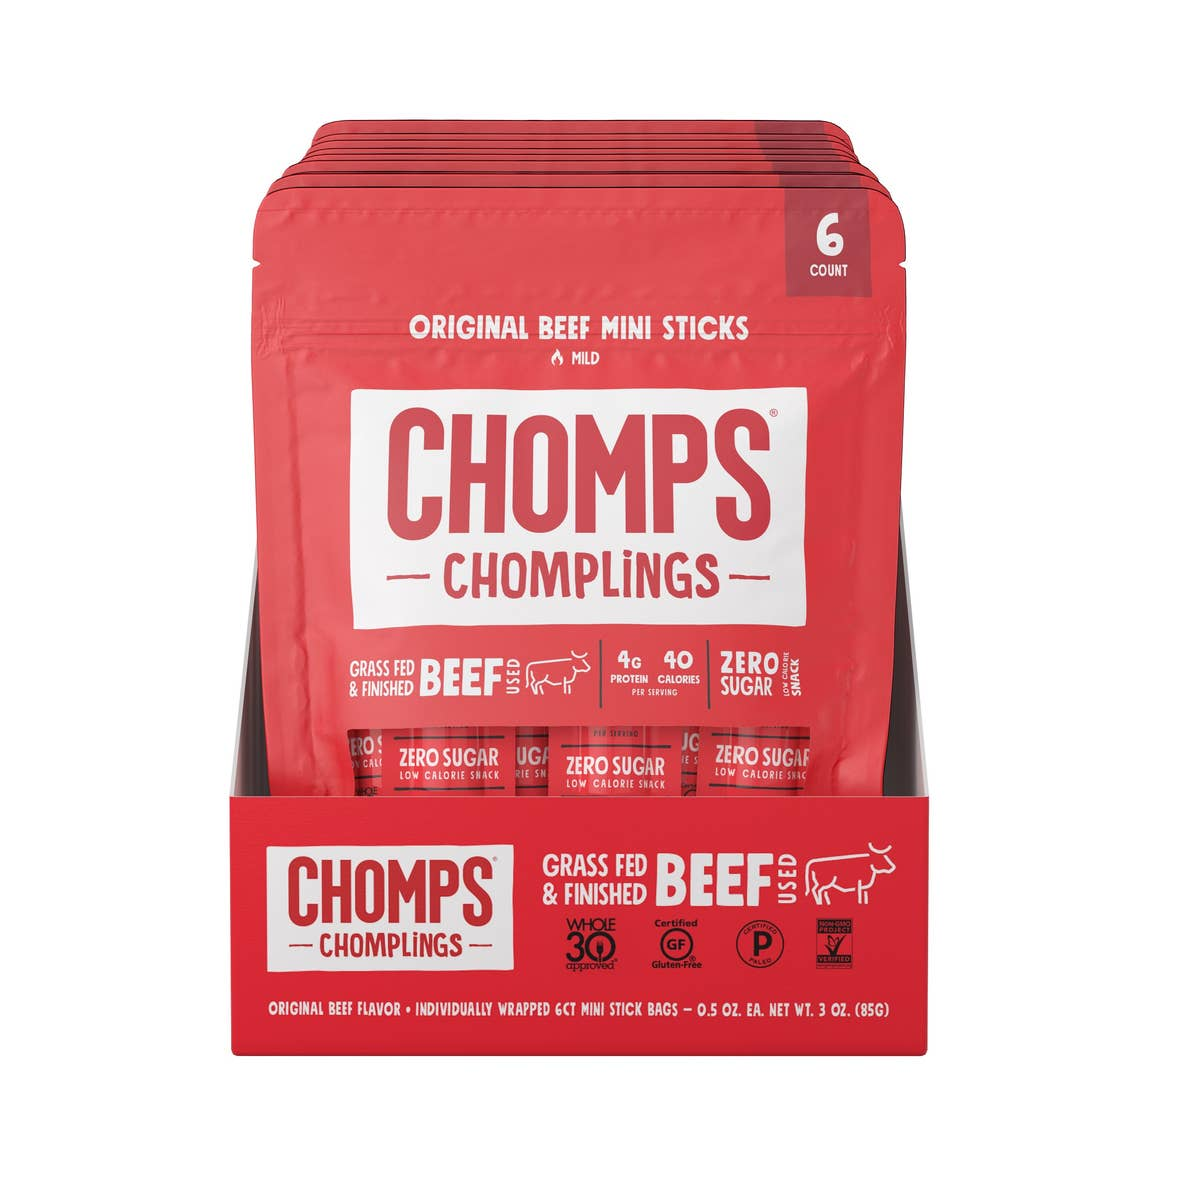 Chomps Grass Fed Original Beef 6ct Chomplings - Pack of 10